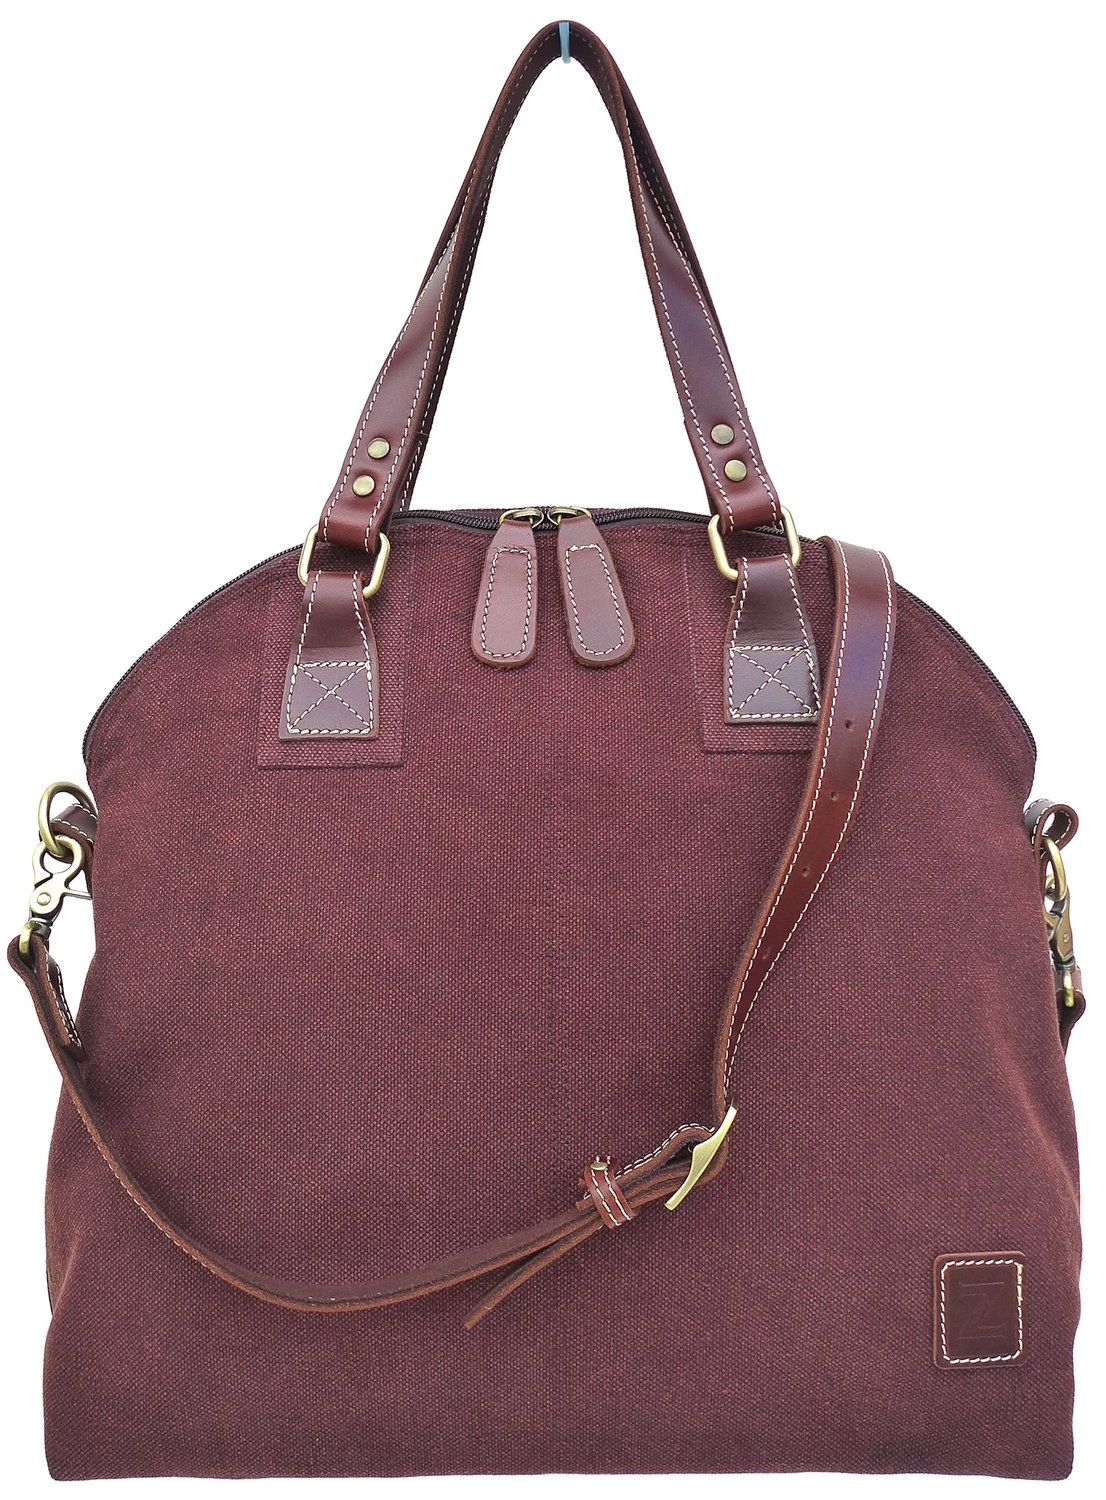 Stone-washed canvas and leather top zip shoulder bag with cross-body strap (brown)